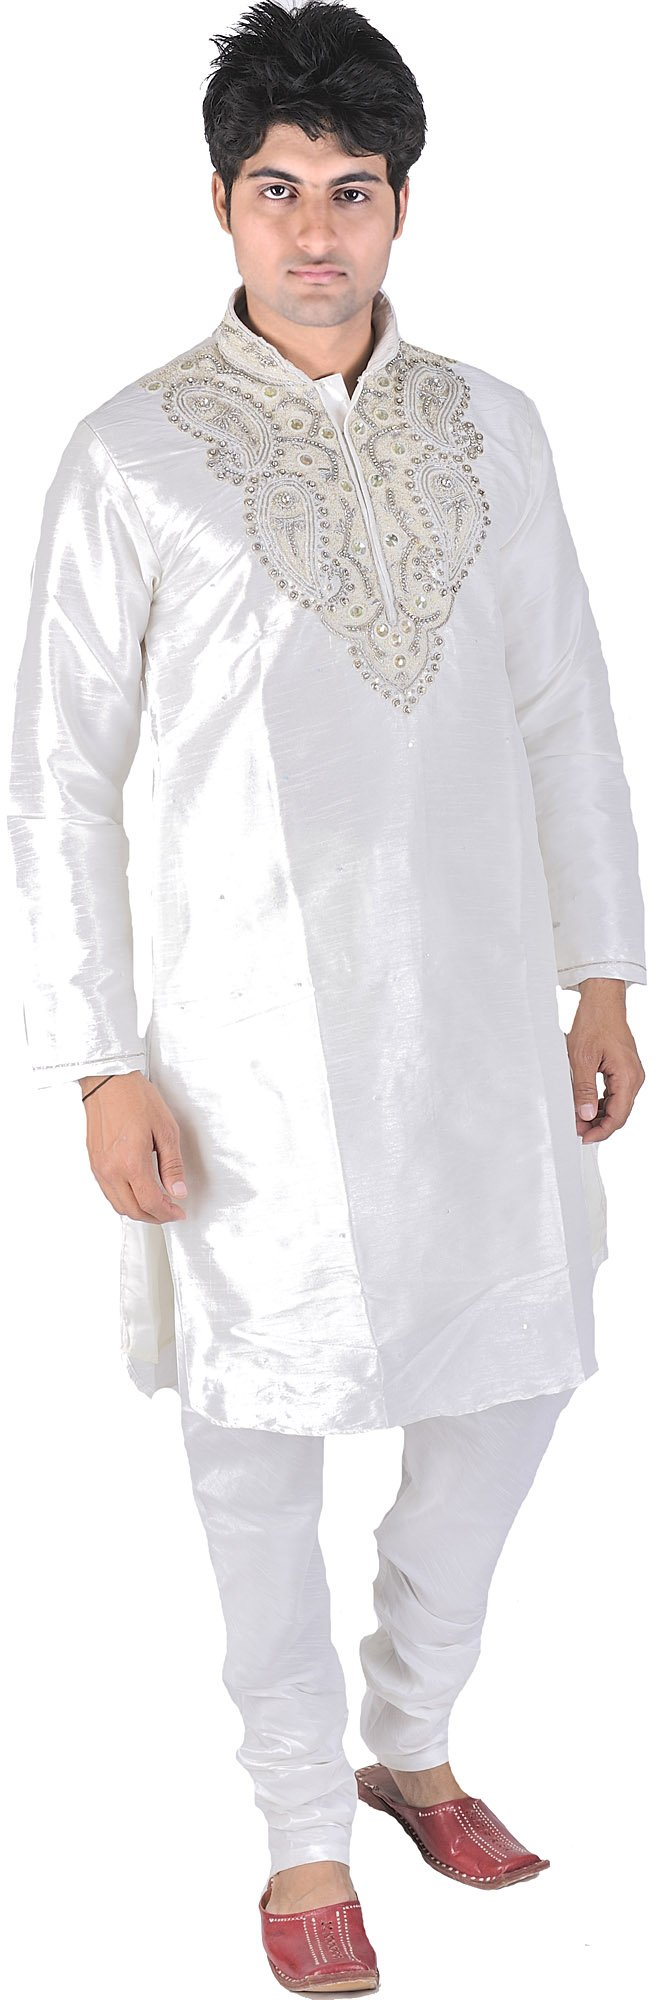 Exotic India White Wedding Kurta Pajama with Zardozi an Size 40